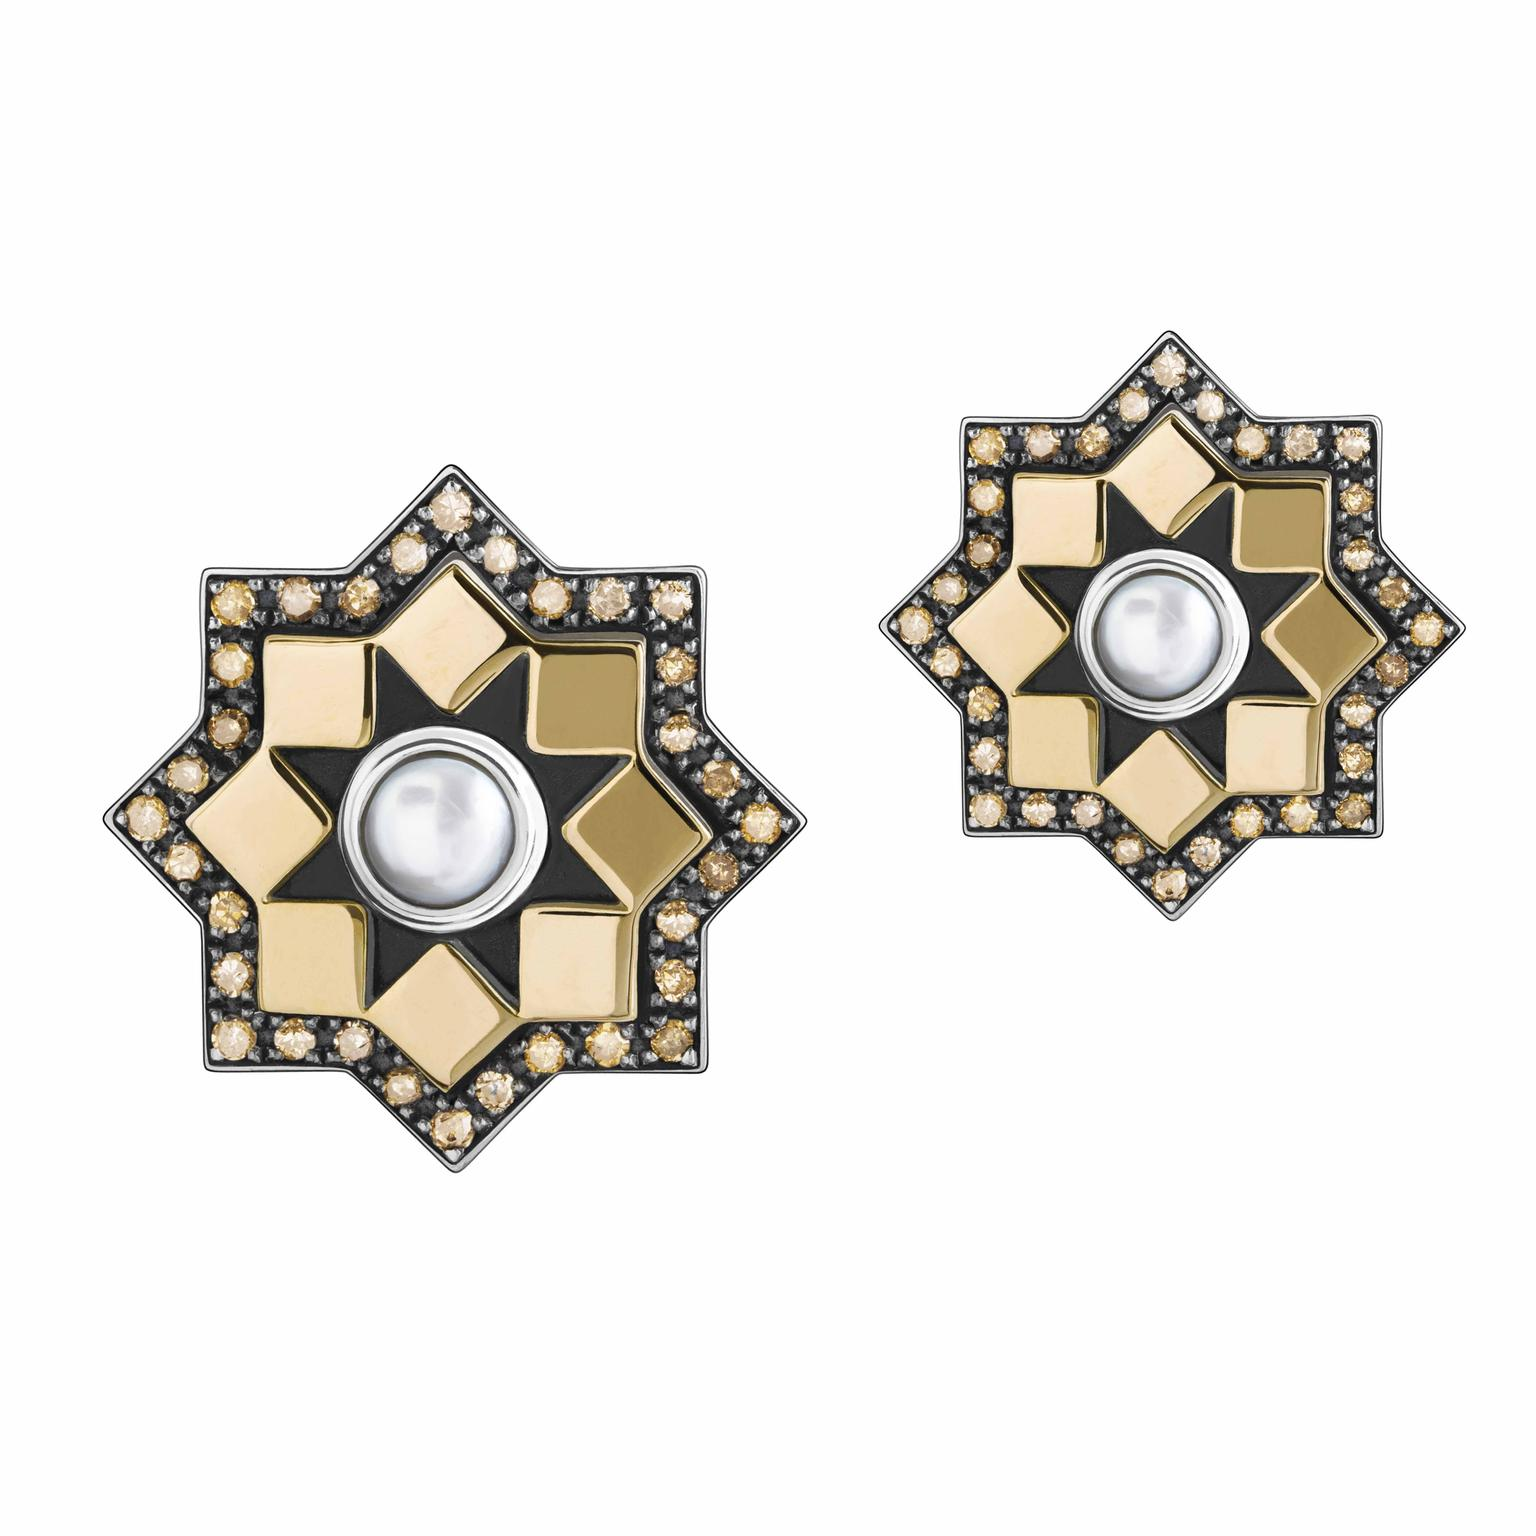 Mamluk earrings by Azza Fahmy